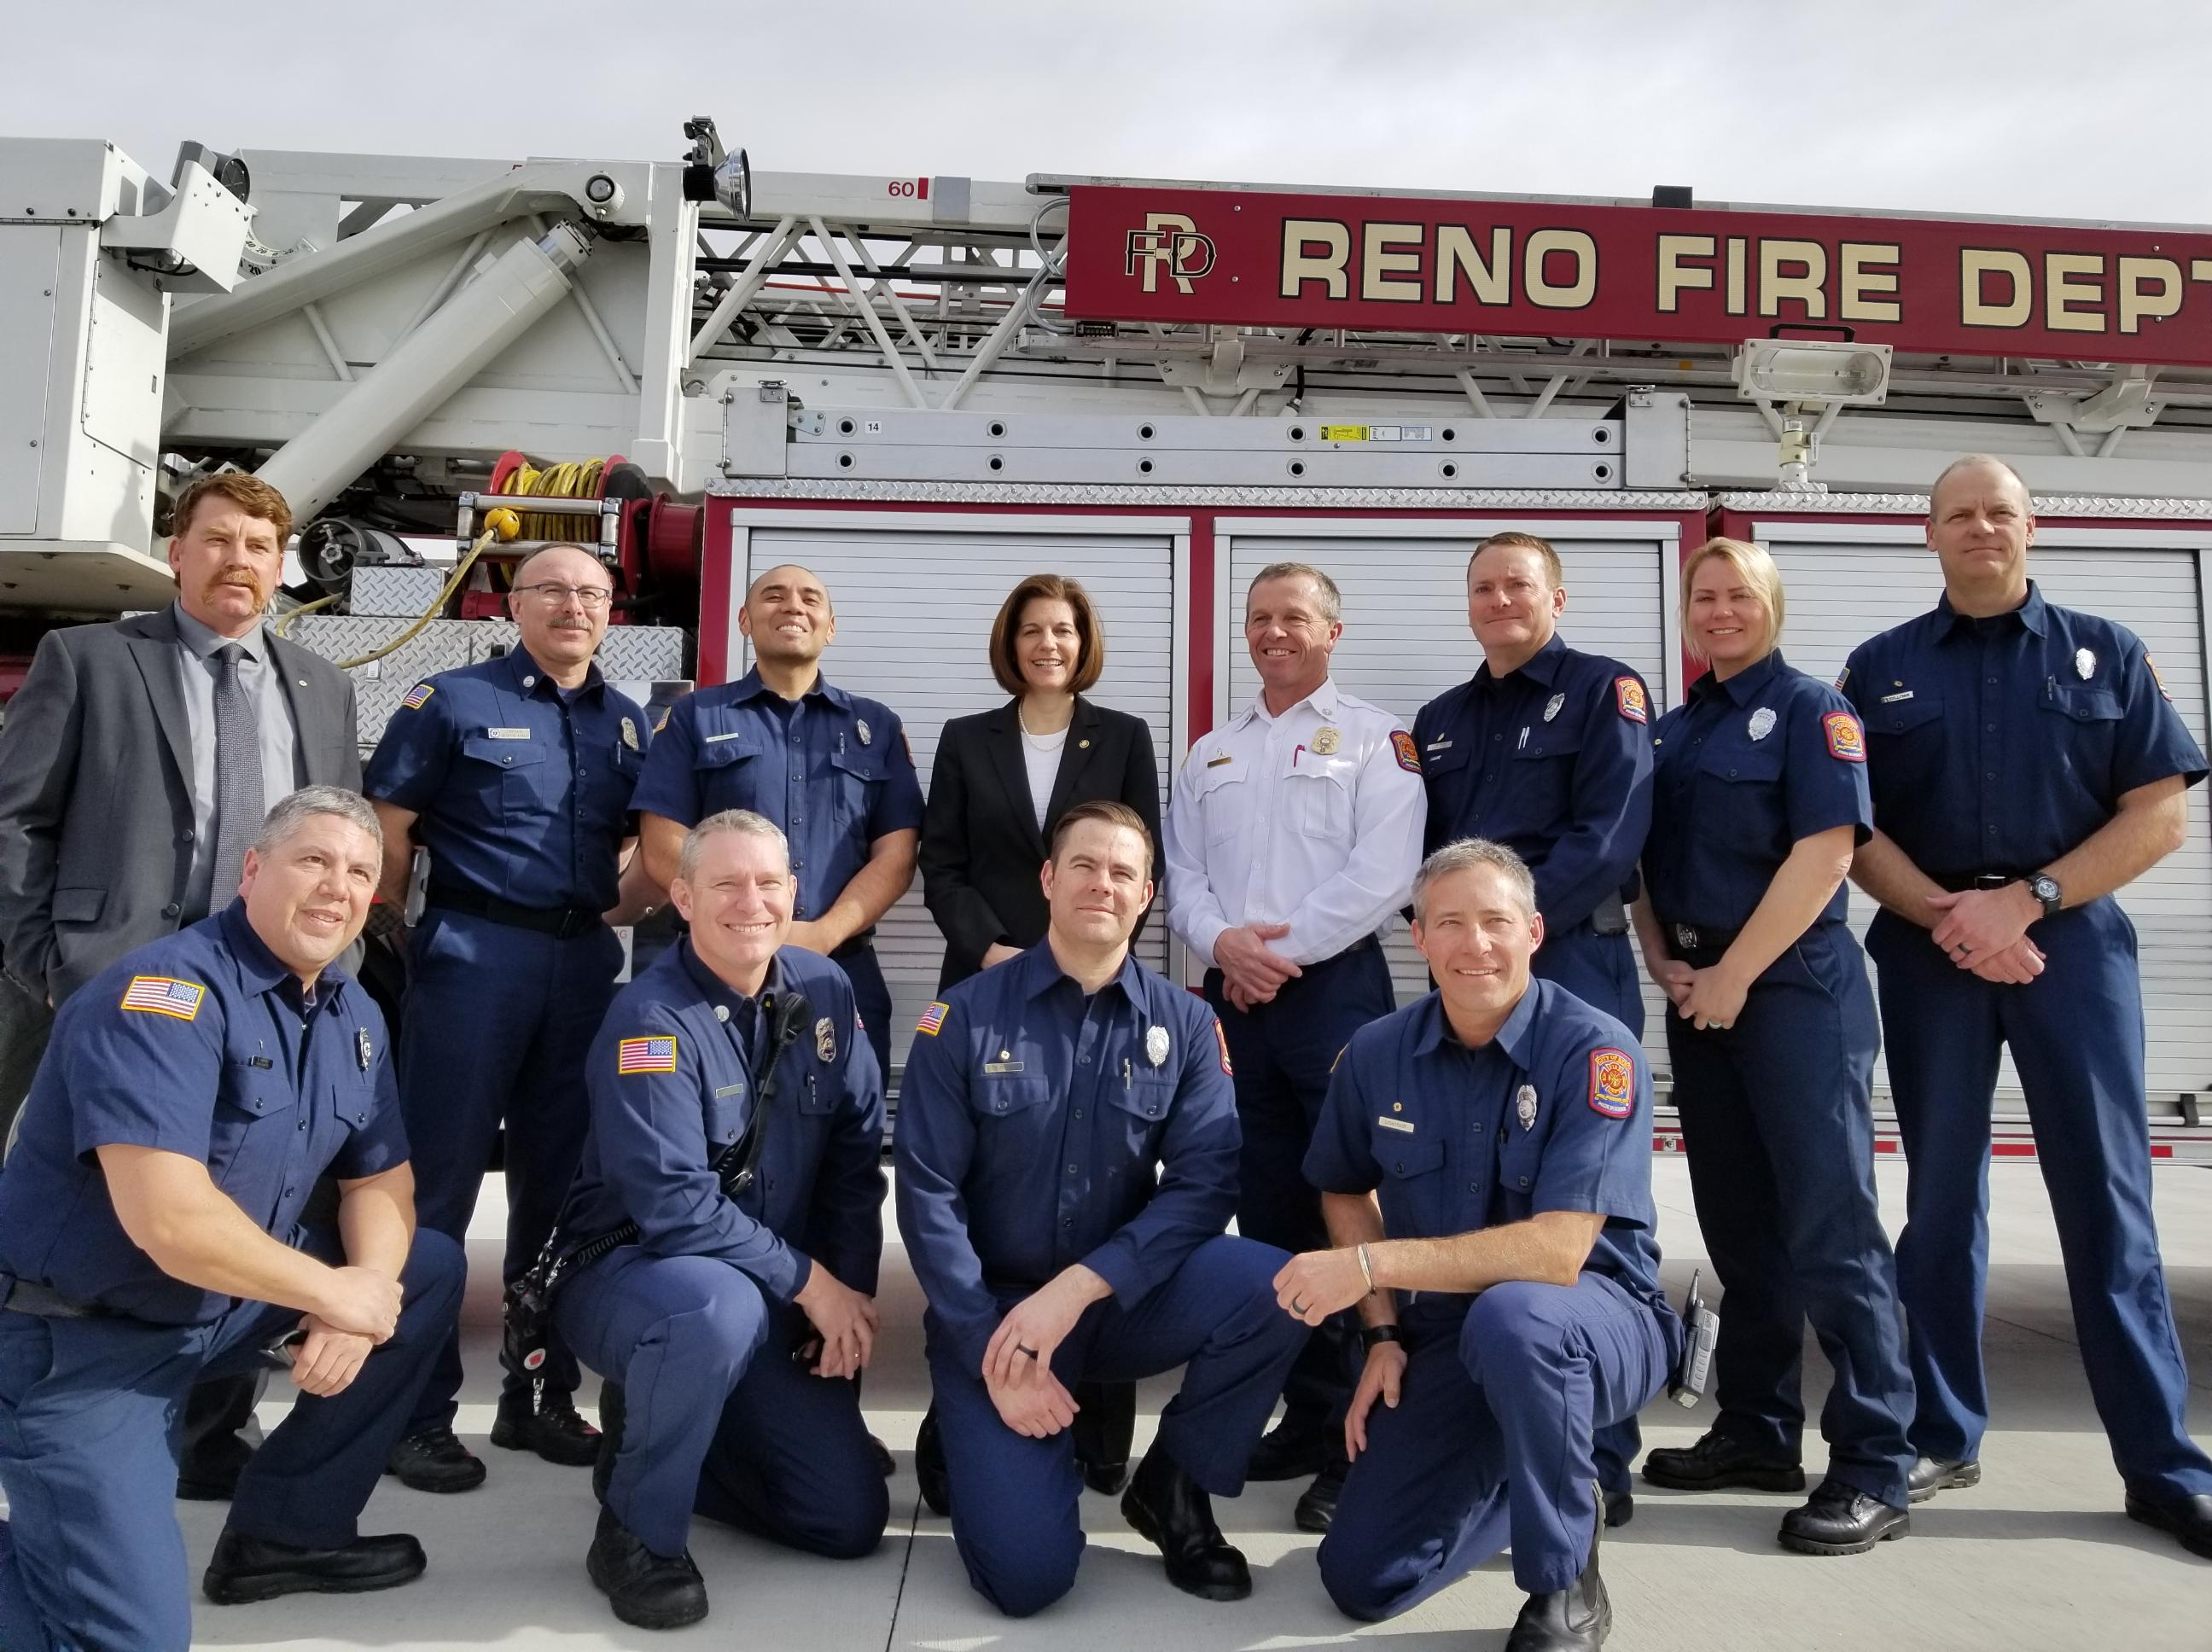 Reno Fire Department